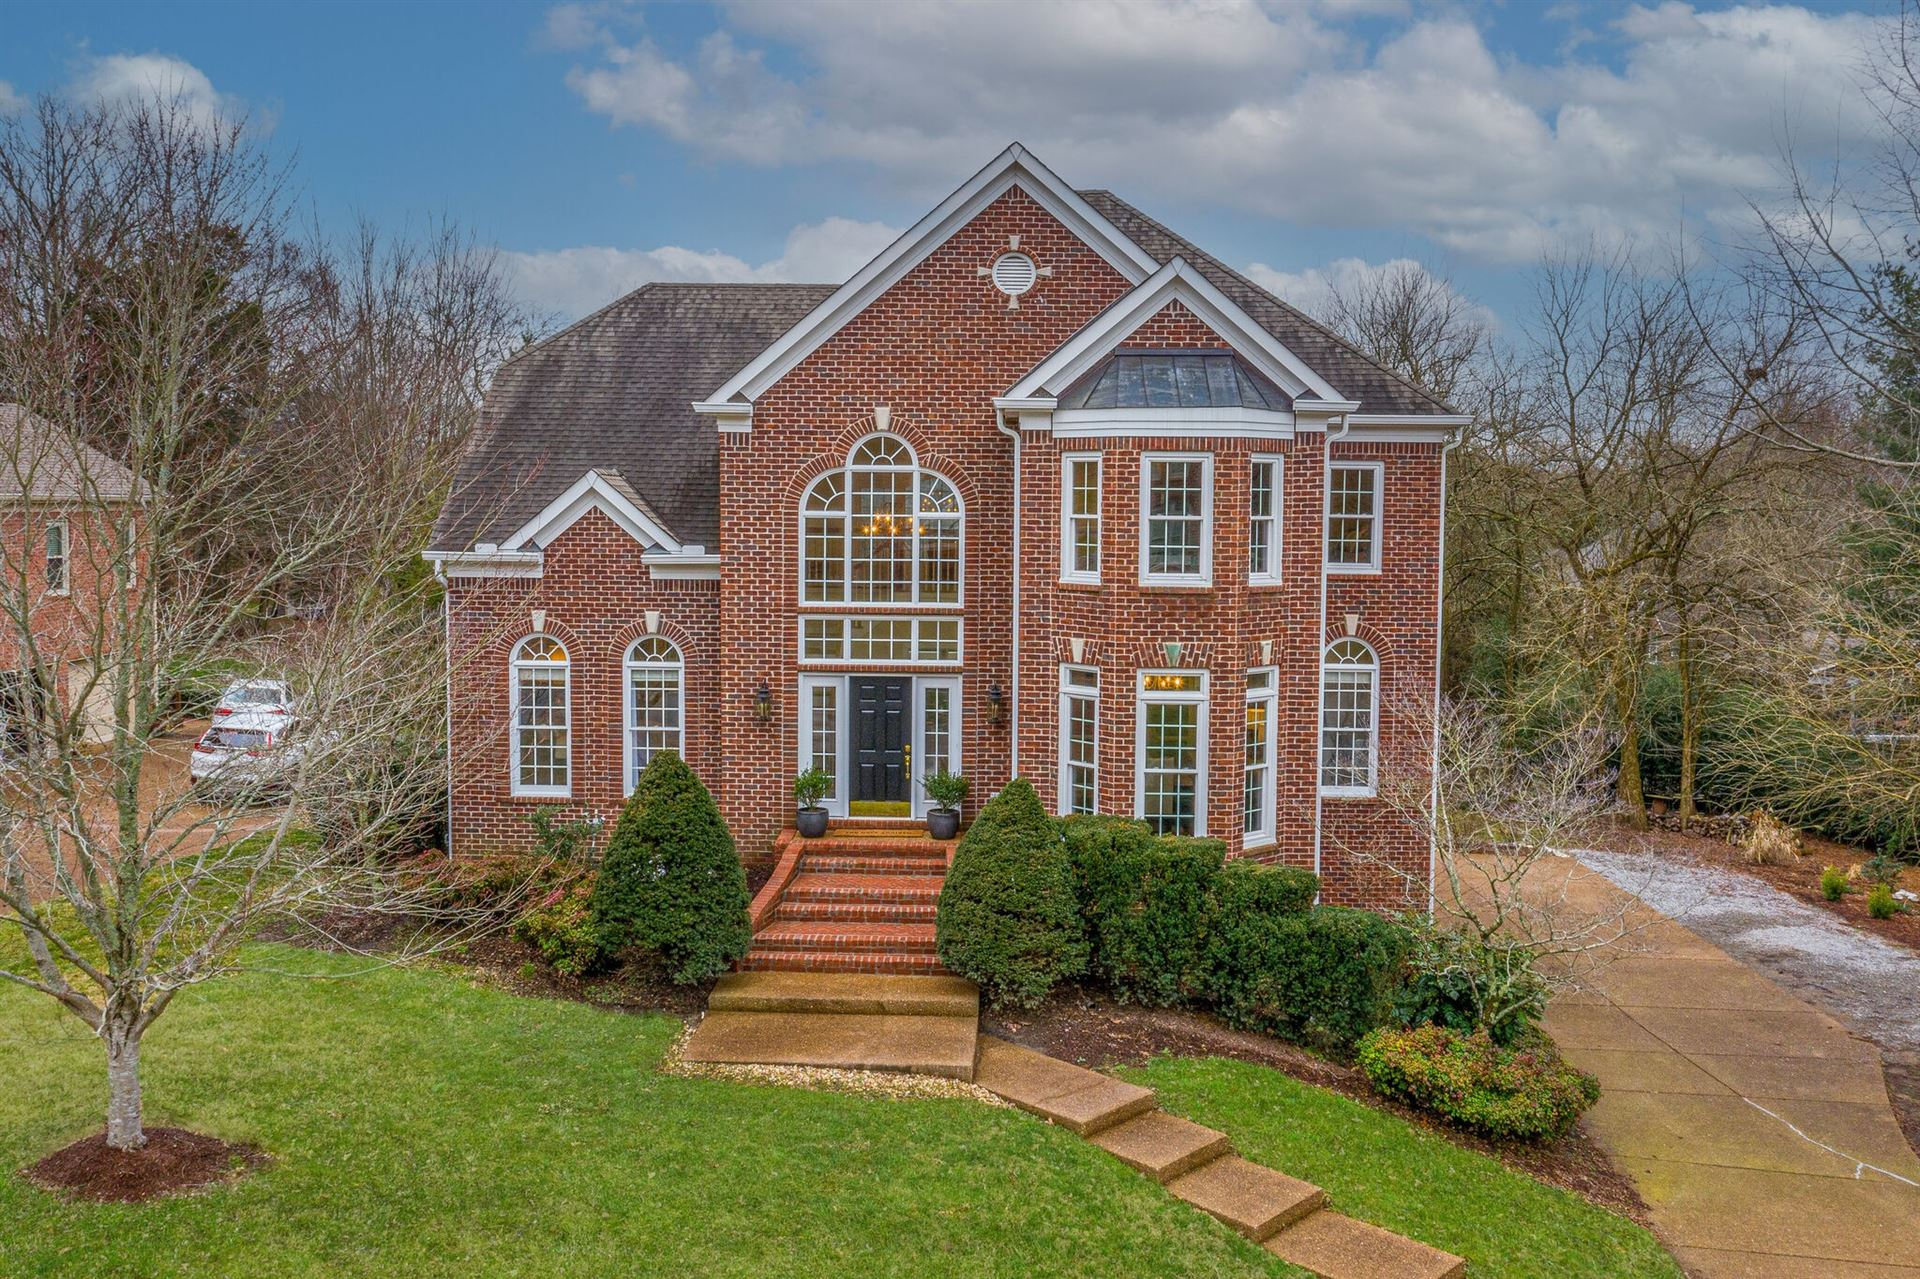 Photo of 9435 Norwood Dr, Brentwood, TN 37027 (MLS # 2233099)